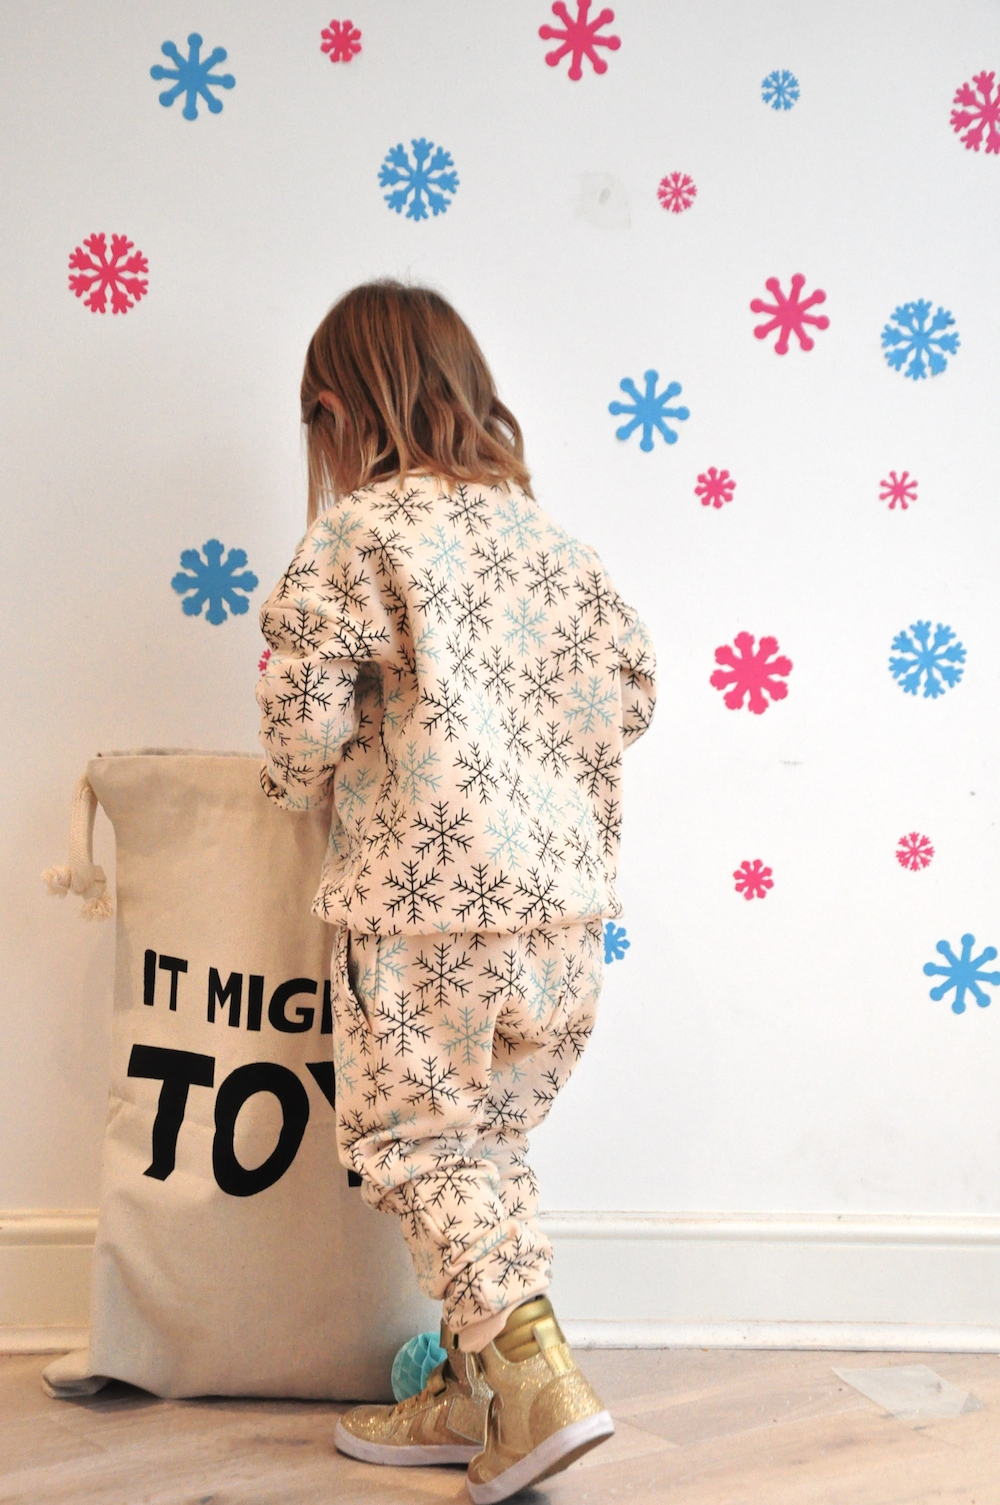 Gardner_and_the_gang_harrods_miniharrods_Christmas_tellkiddo_kidsen_8